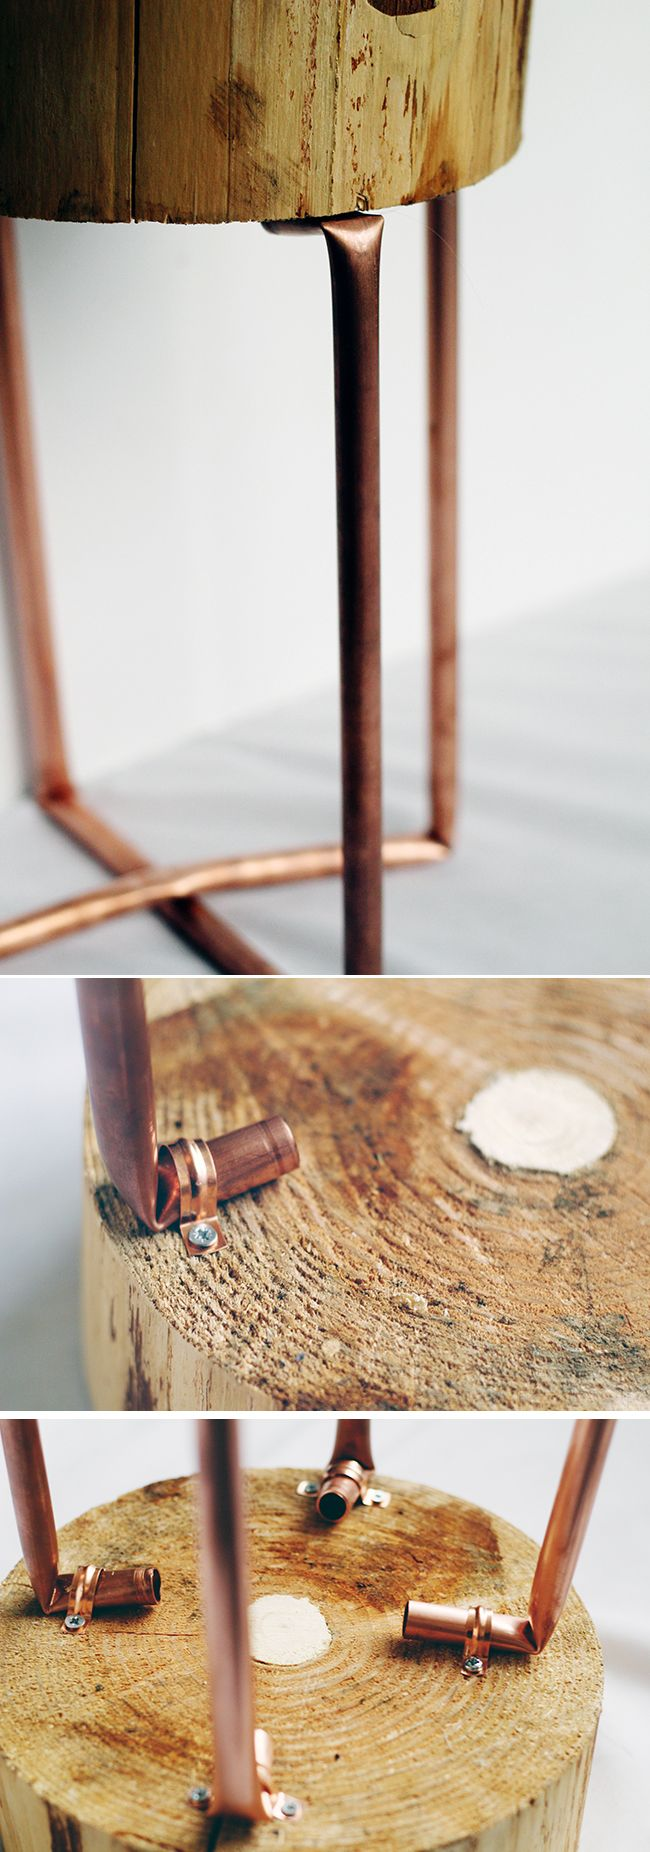 DIY Copper and Wood Slice Table Tutorial by fall for diy